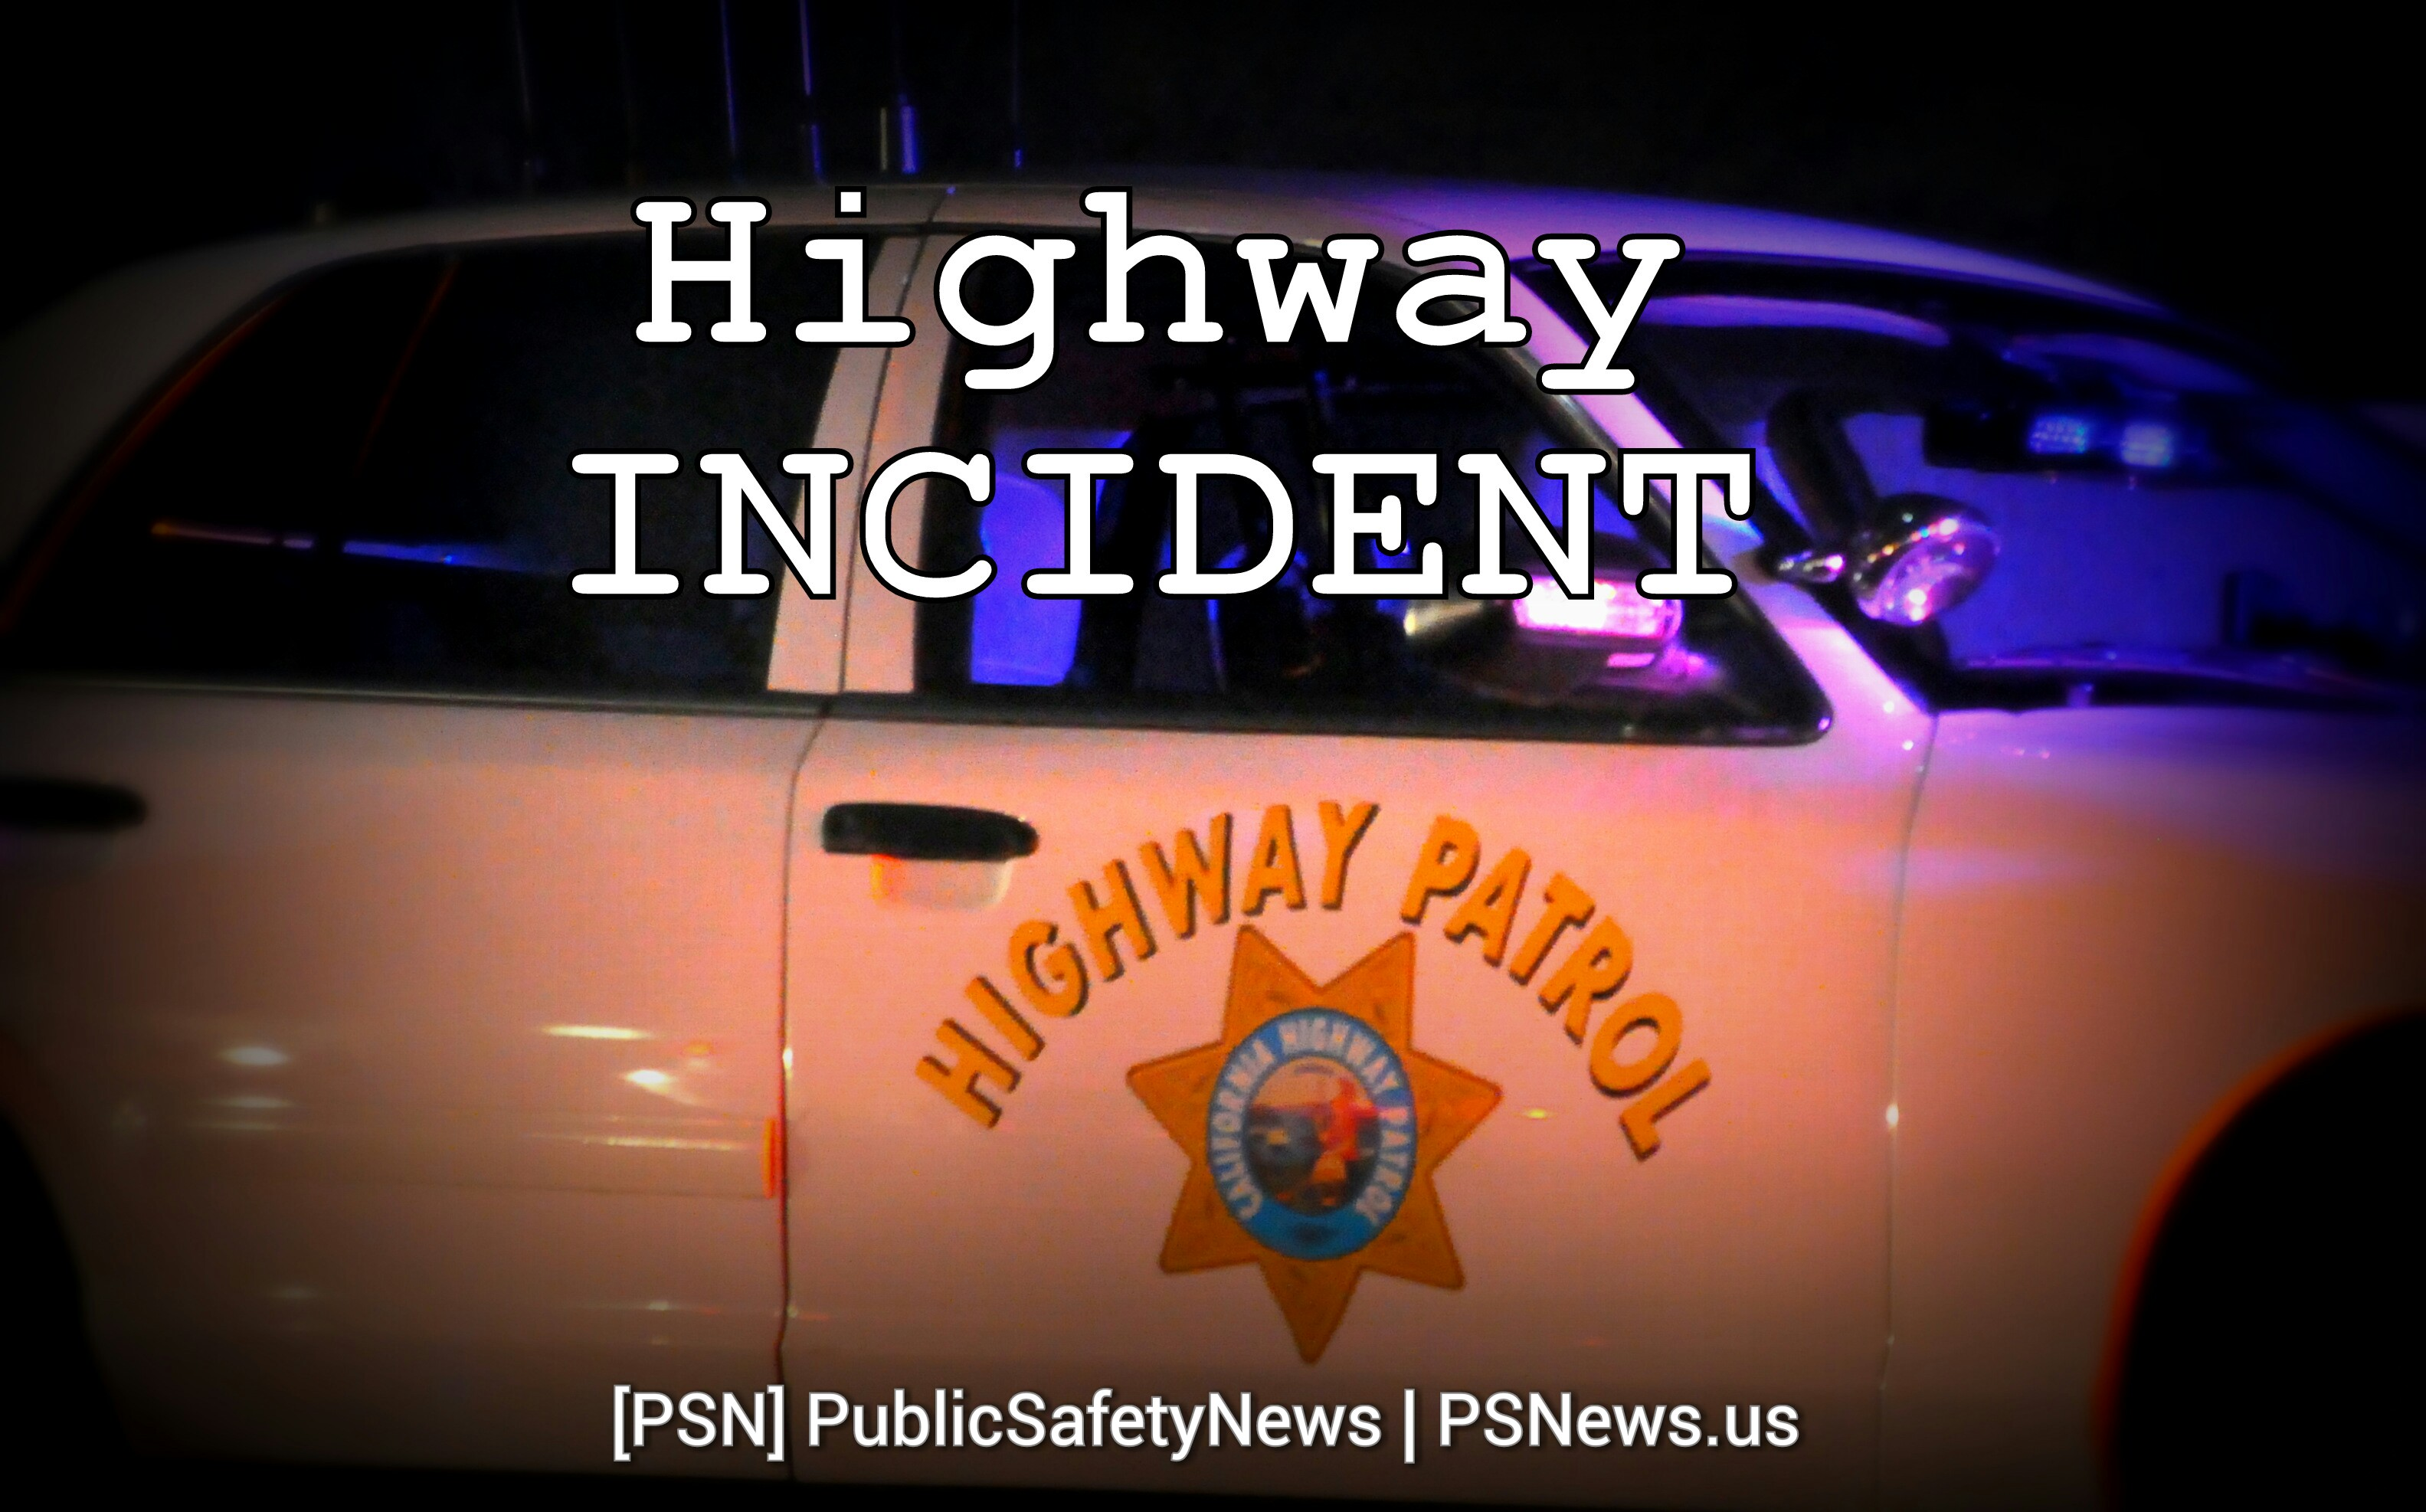 CHP investigates fatal accident on I-5 in rural Elk Grove